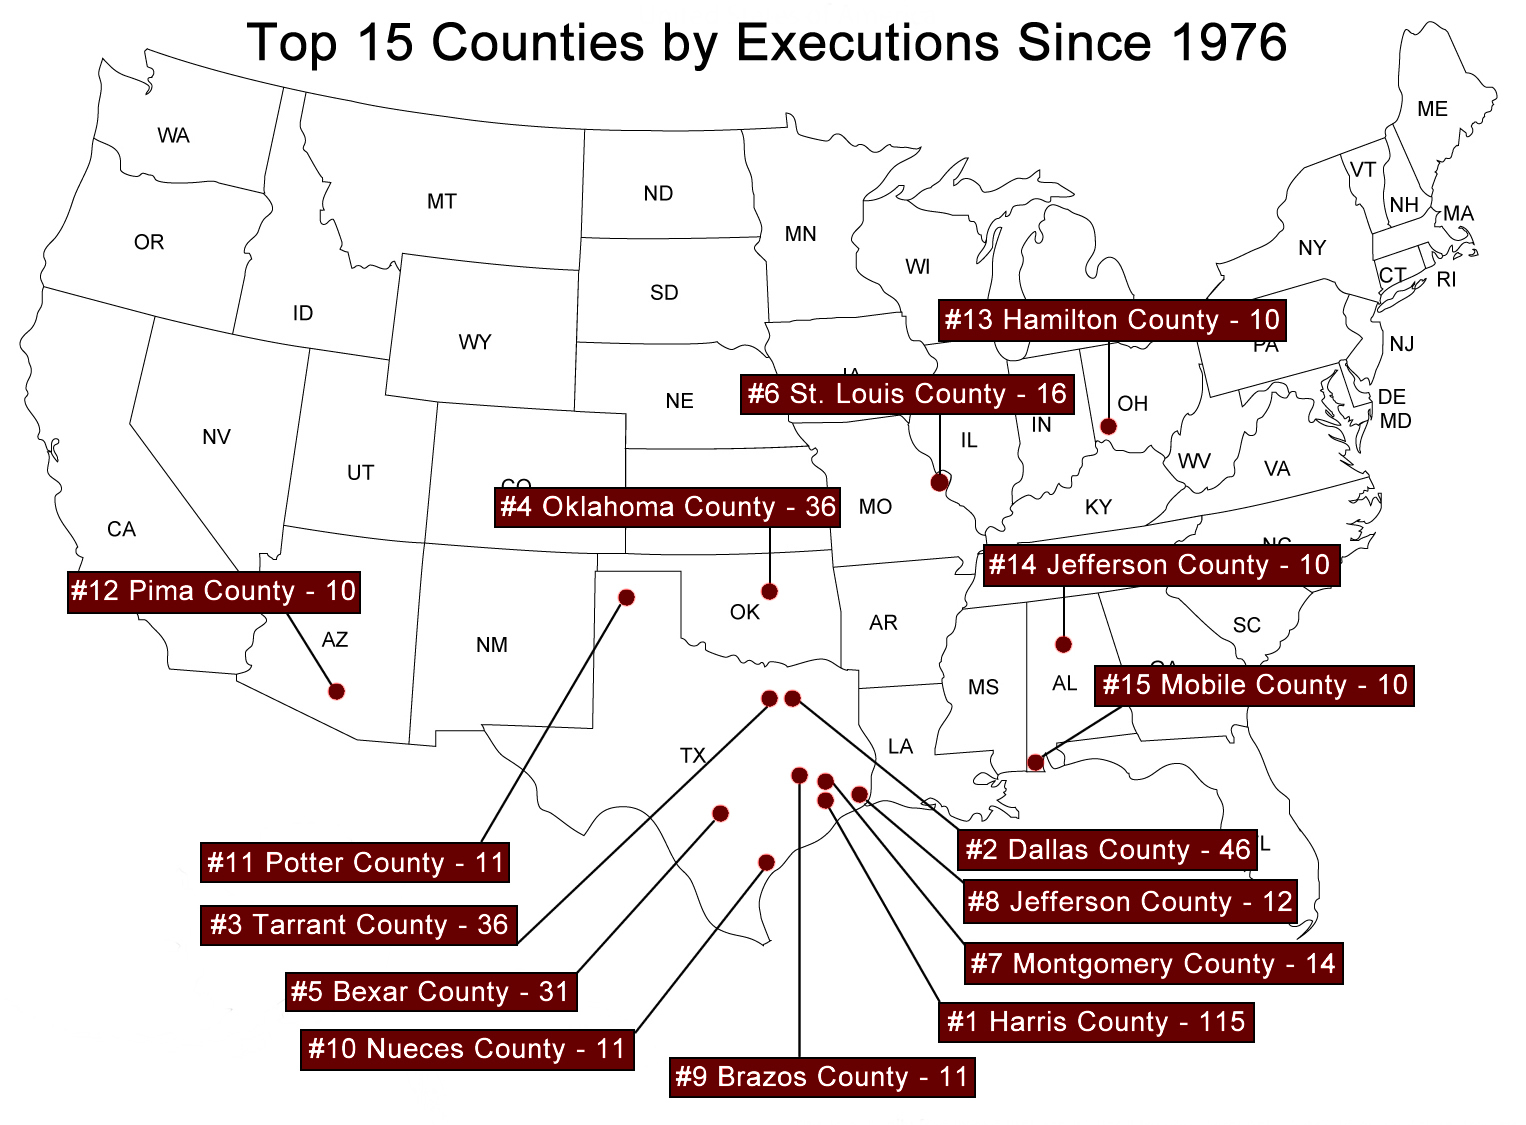 Executions by County